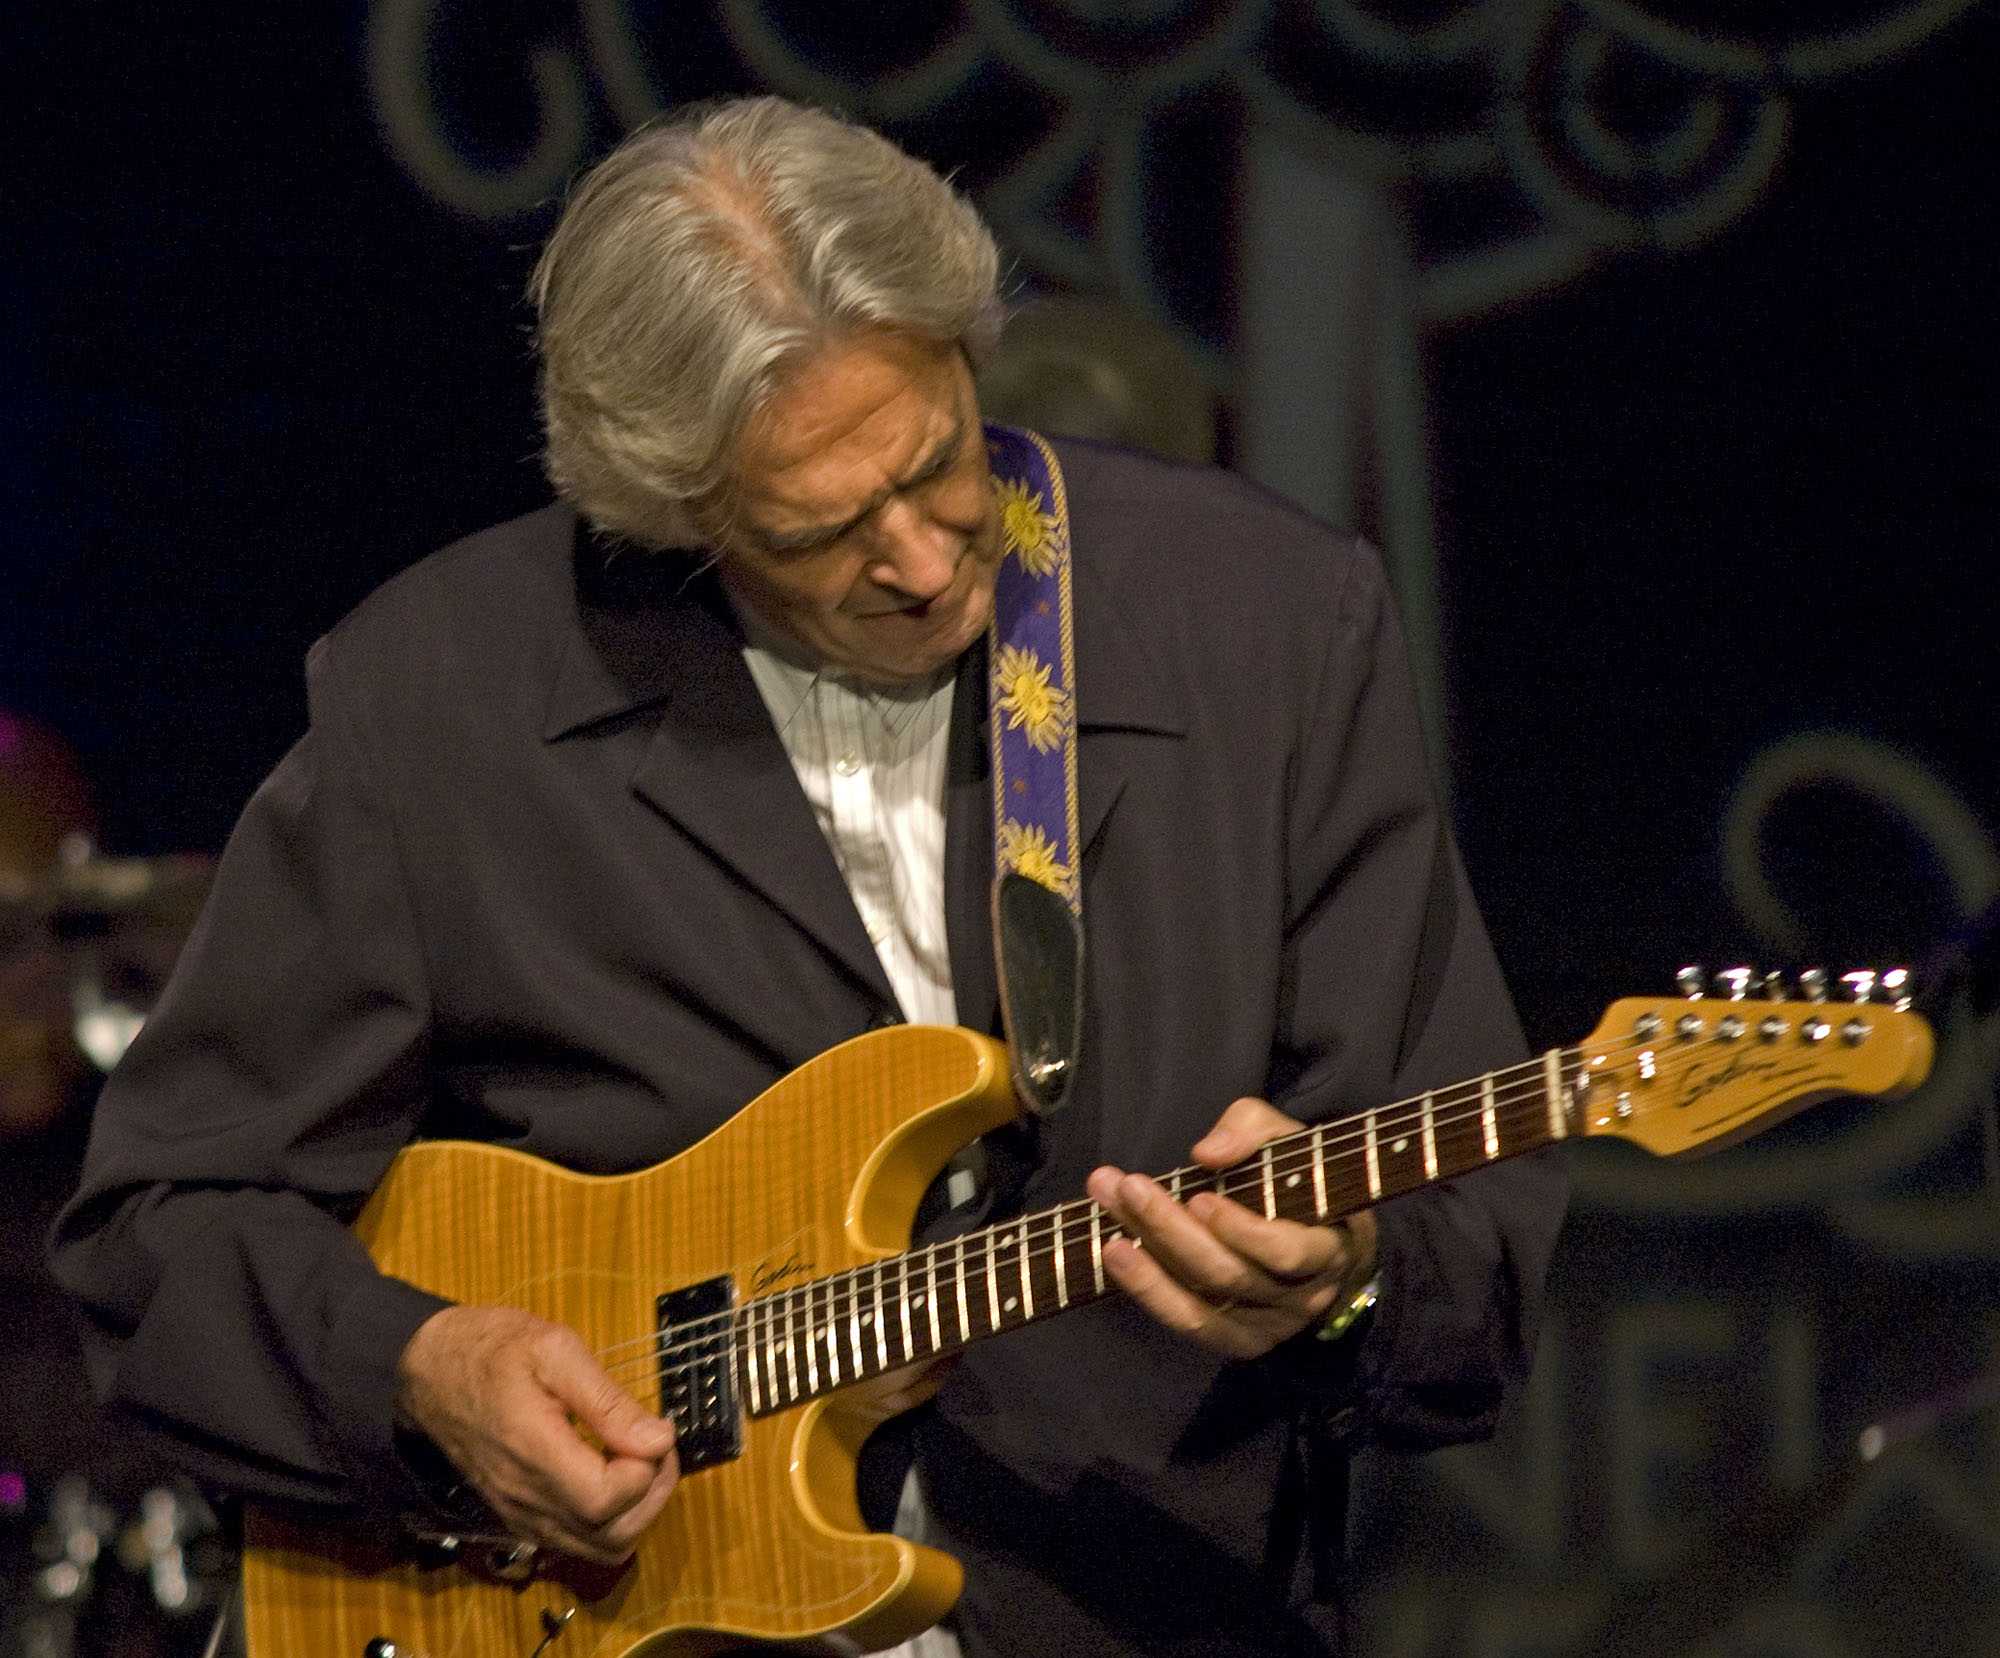 John McLaughlin, Performing with the 4th Dimension at the 2010 New Universe Music Festival